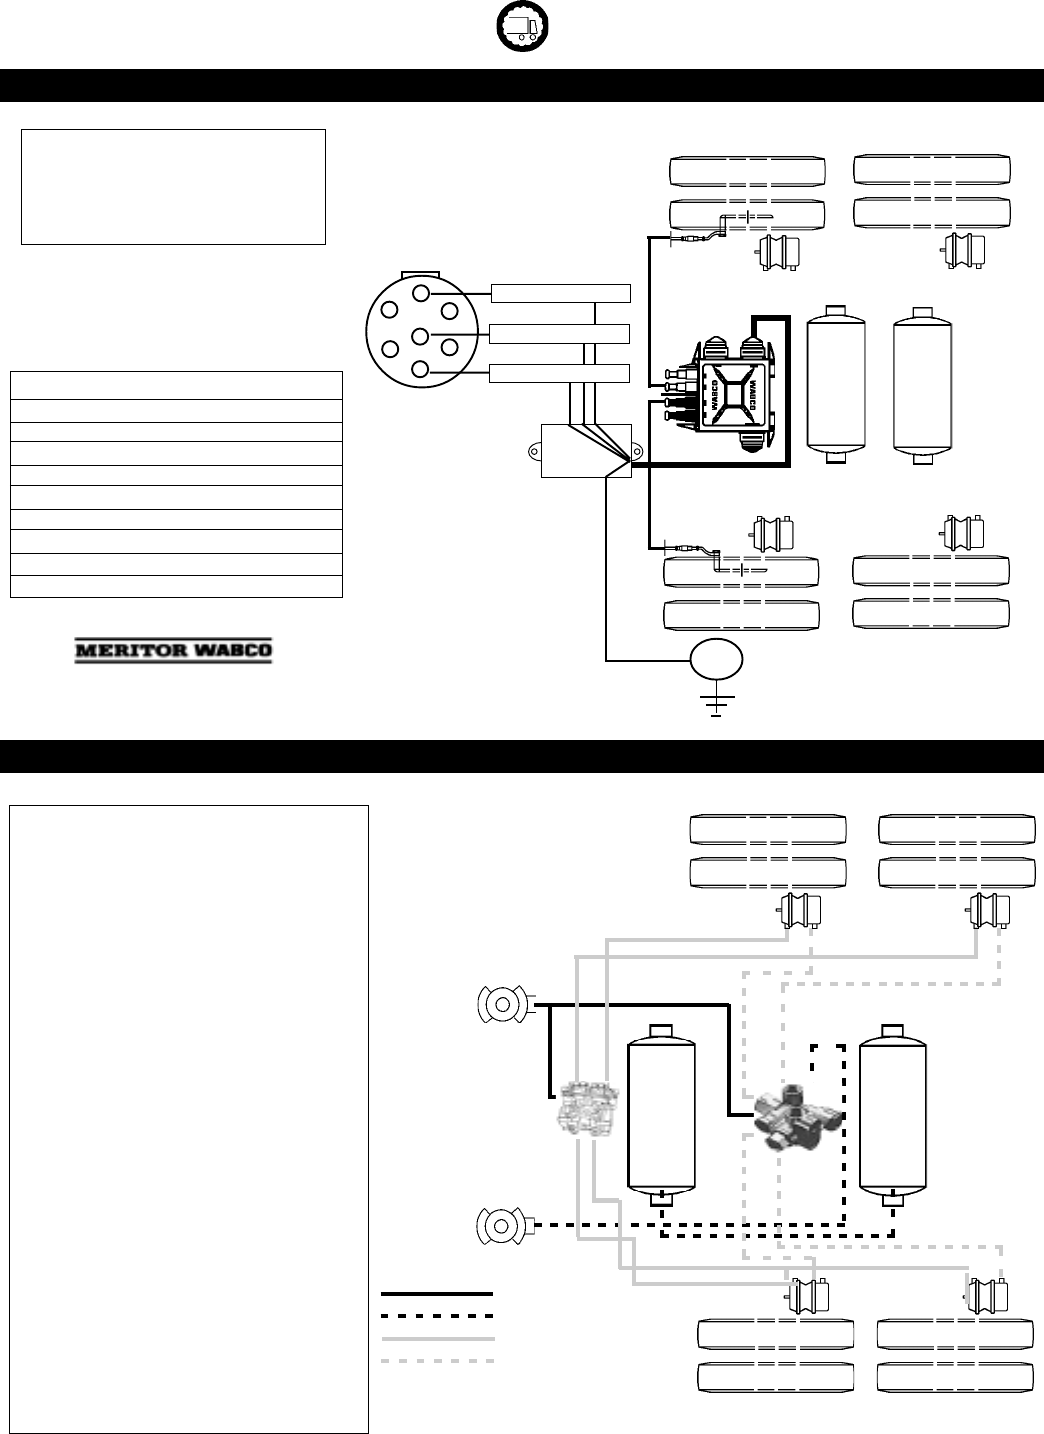 R955320 Meritor Wabco Wiring Diagram Electrical Diagrams Abs Air Valves Dryers 285252 Section1 Manuals